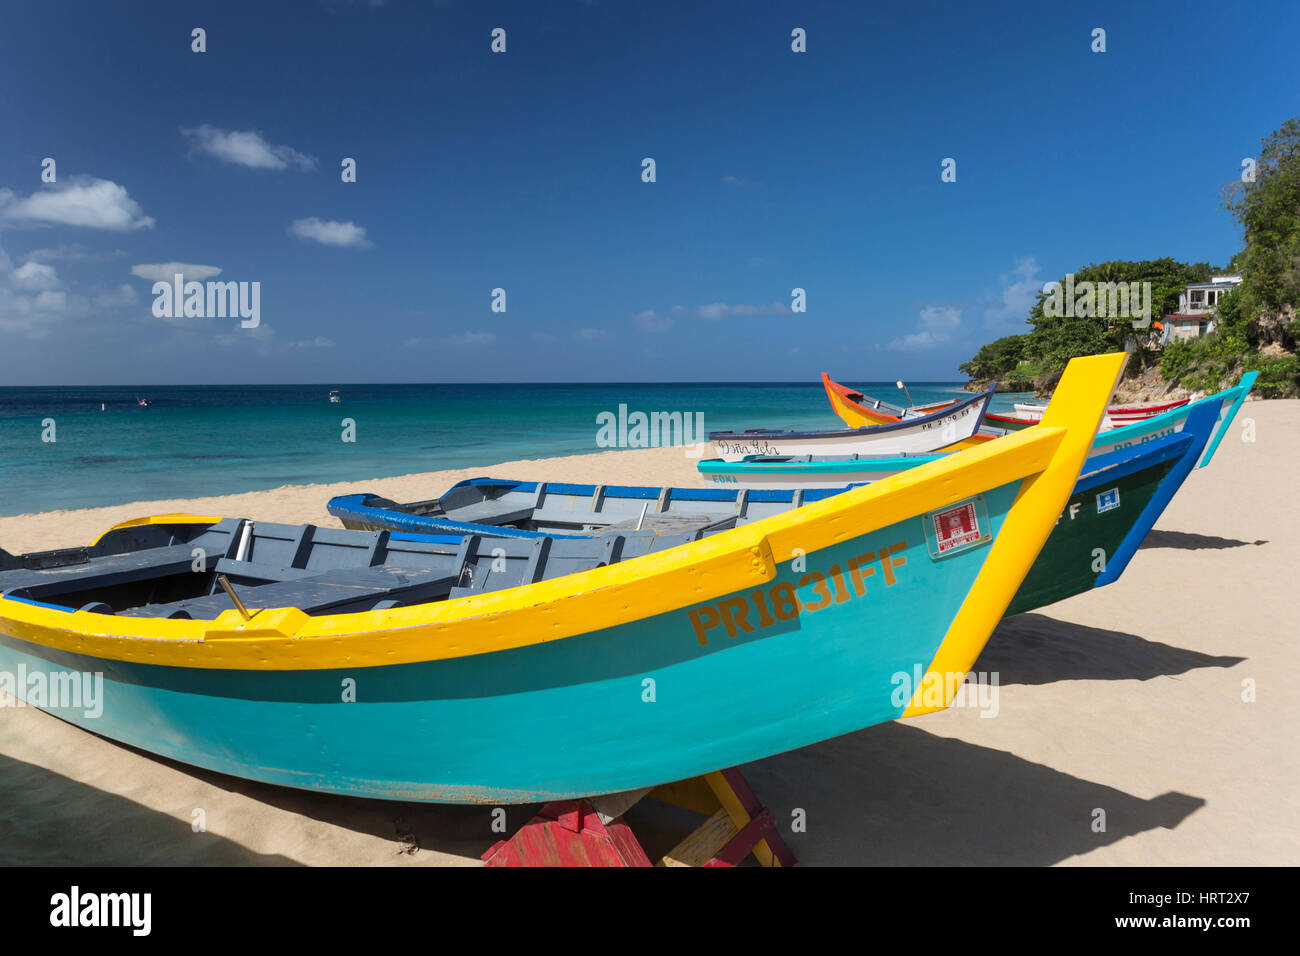 ROW OF BRIGHTLY PAINTED YOLA FISHING BOATS CRASH BOAT BEACH AGUADILLA PUERTO RICO - Stock Image